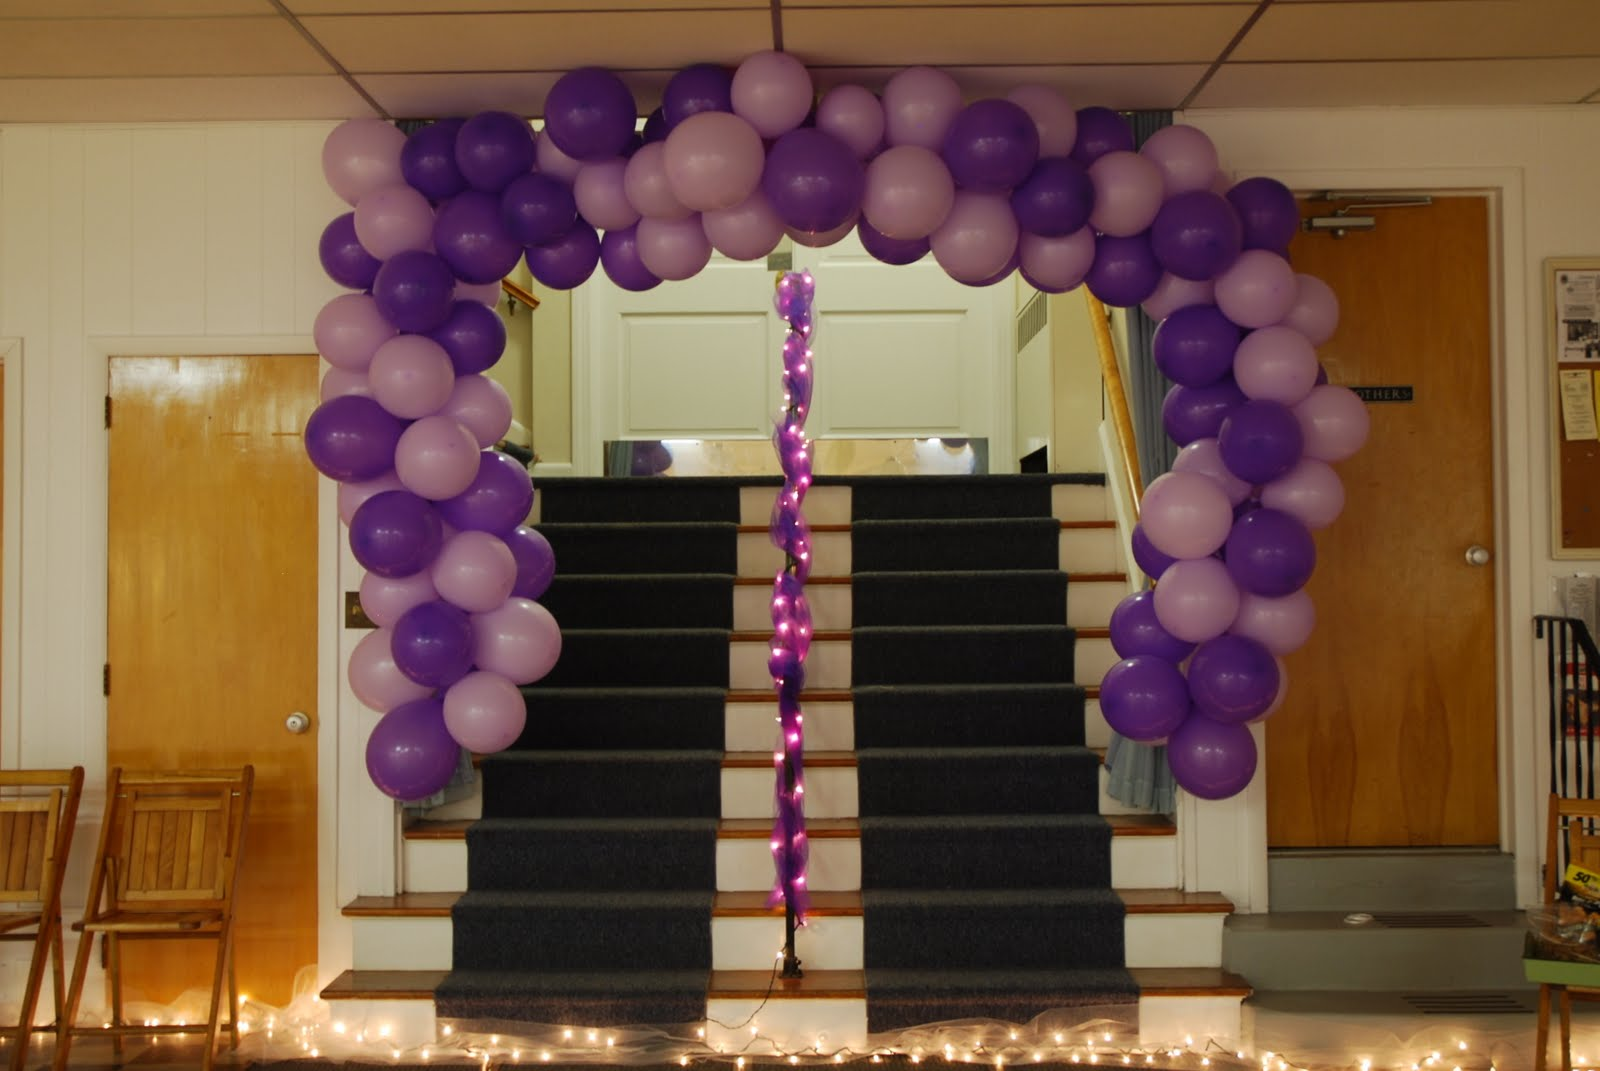 The princess and the frog blog prom 80 39 s style for 80s prom decoration ideas